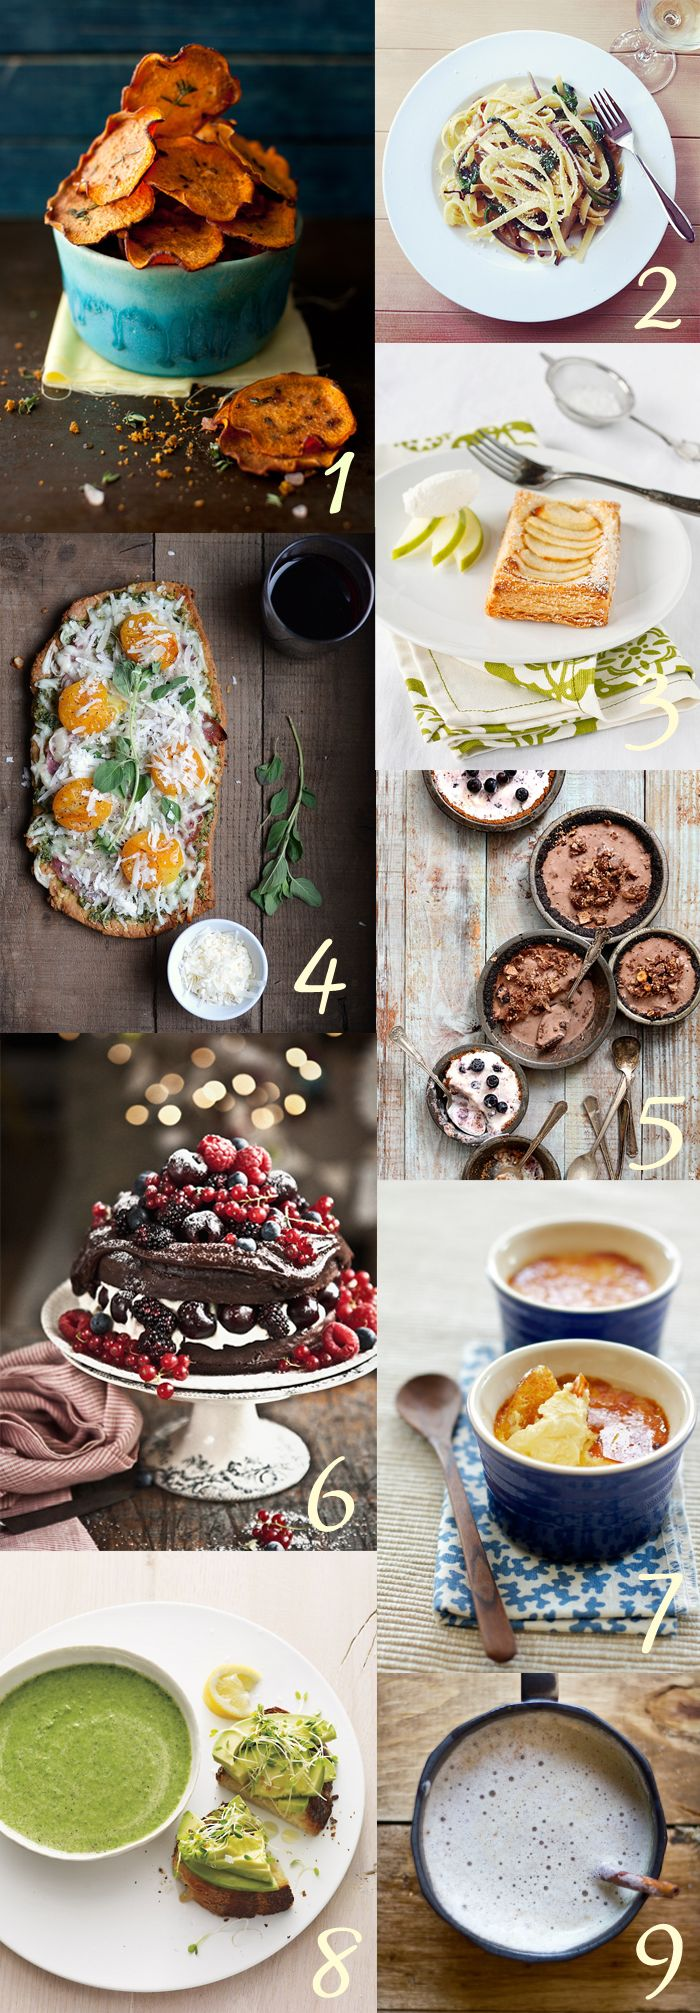 #Thermomix and non-Thermomix #Recipes to die for via The Thermo Queen